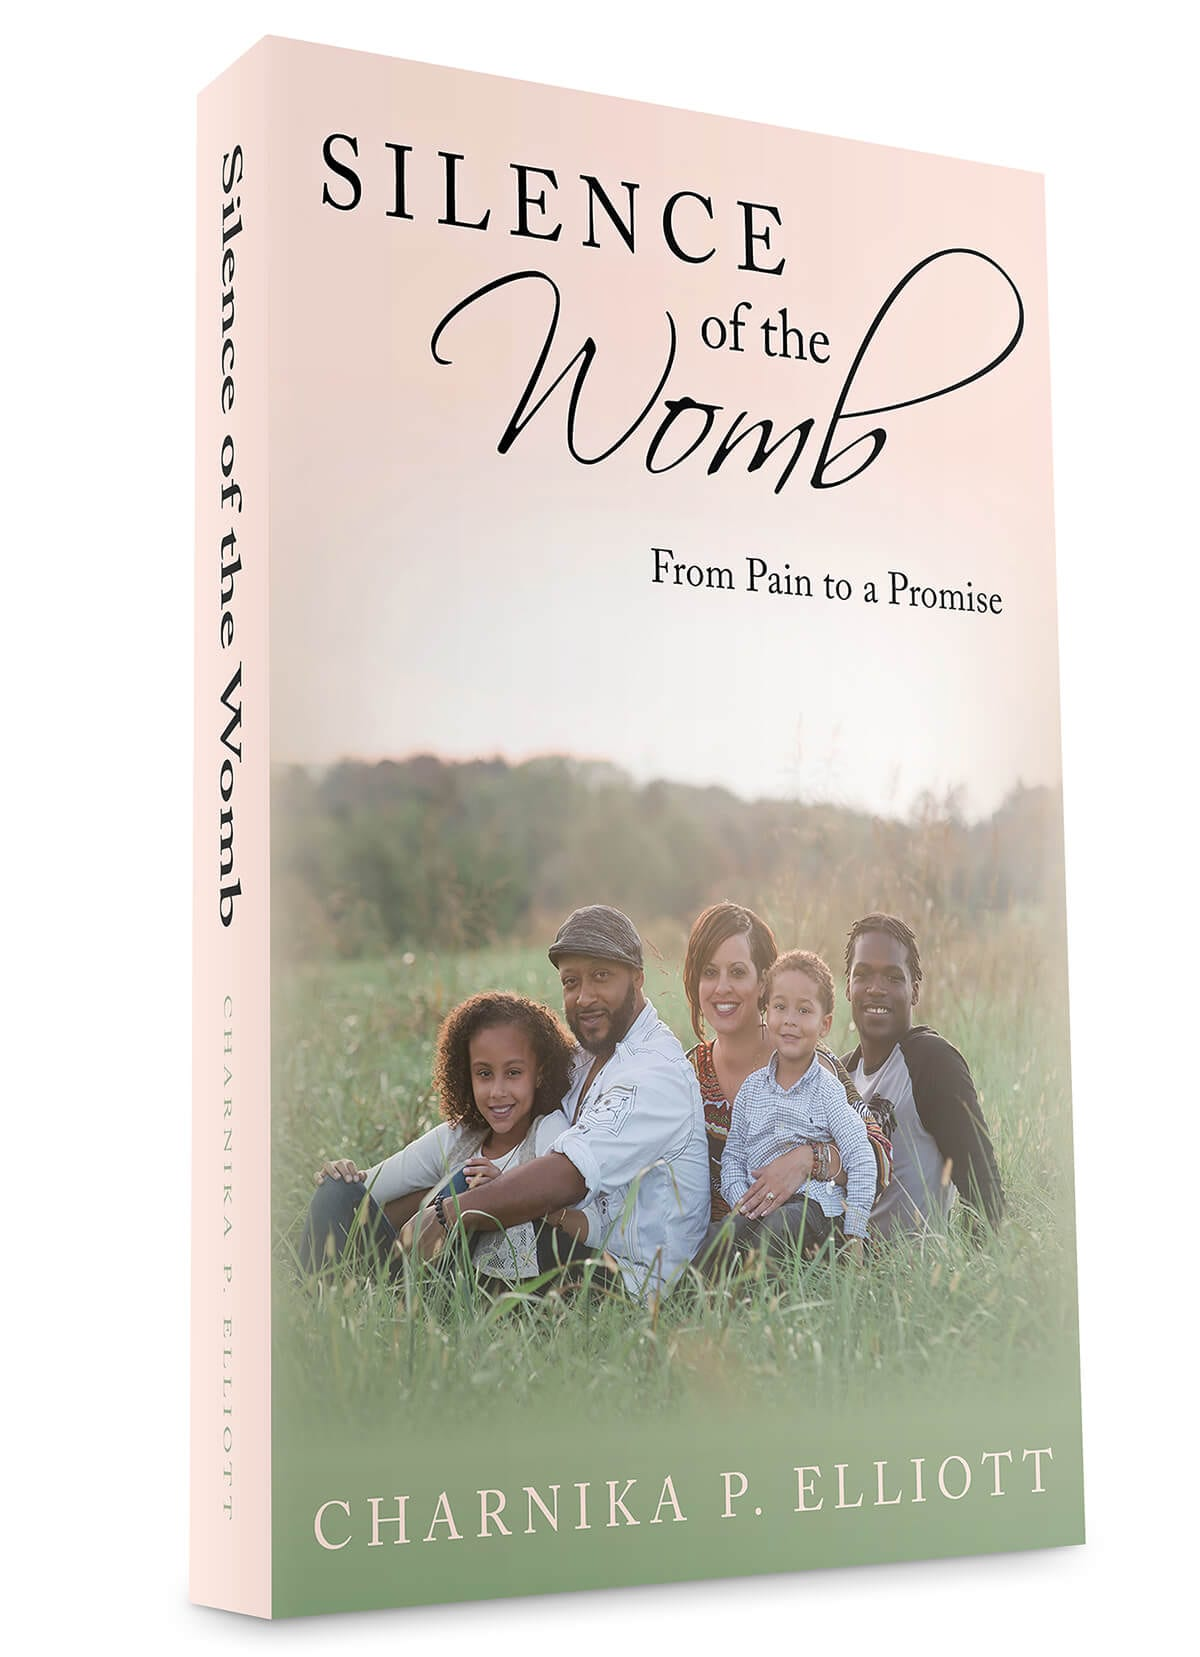 Silence of the Womb book